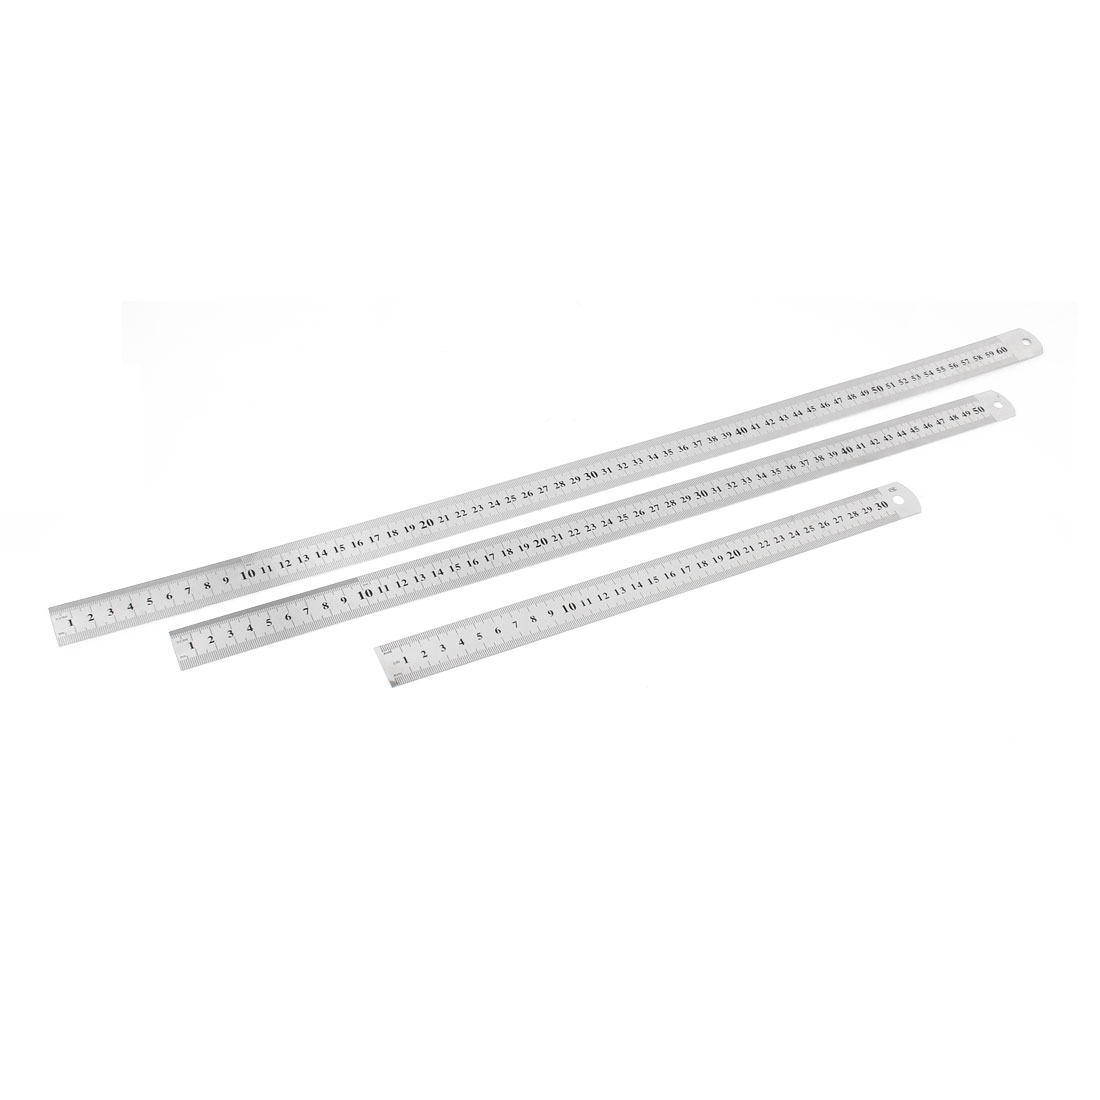 3 in 1 30cm 50cm 60cm Double Side Students Metric Straight Ruler Silver Tone